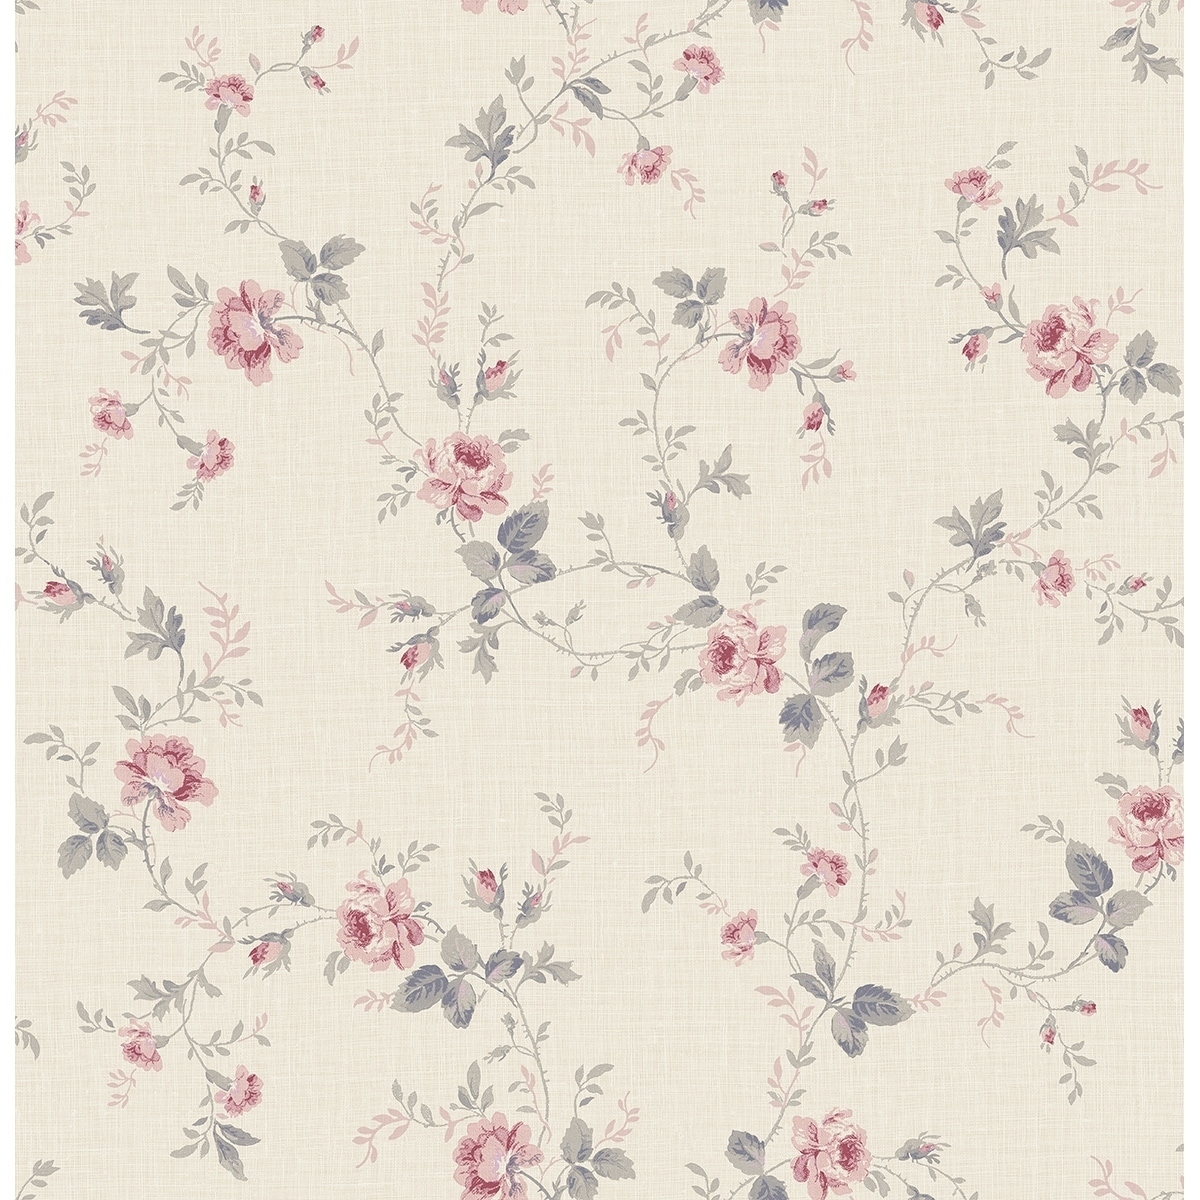 Shop Satin All Over Floral Wallpaper 32 81 Feet Long X 20 5 Inchs